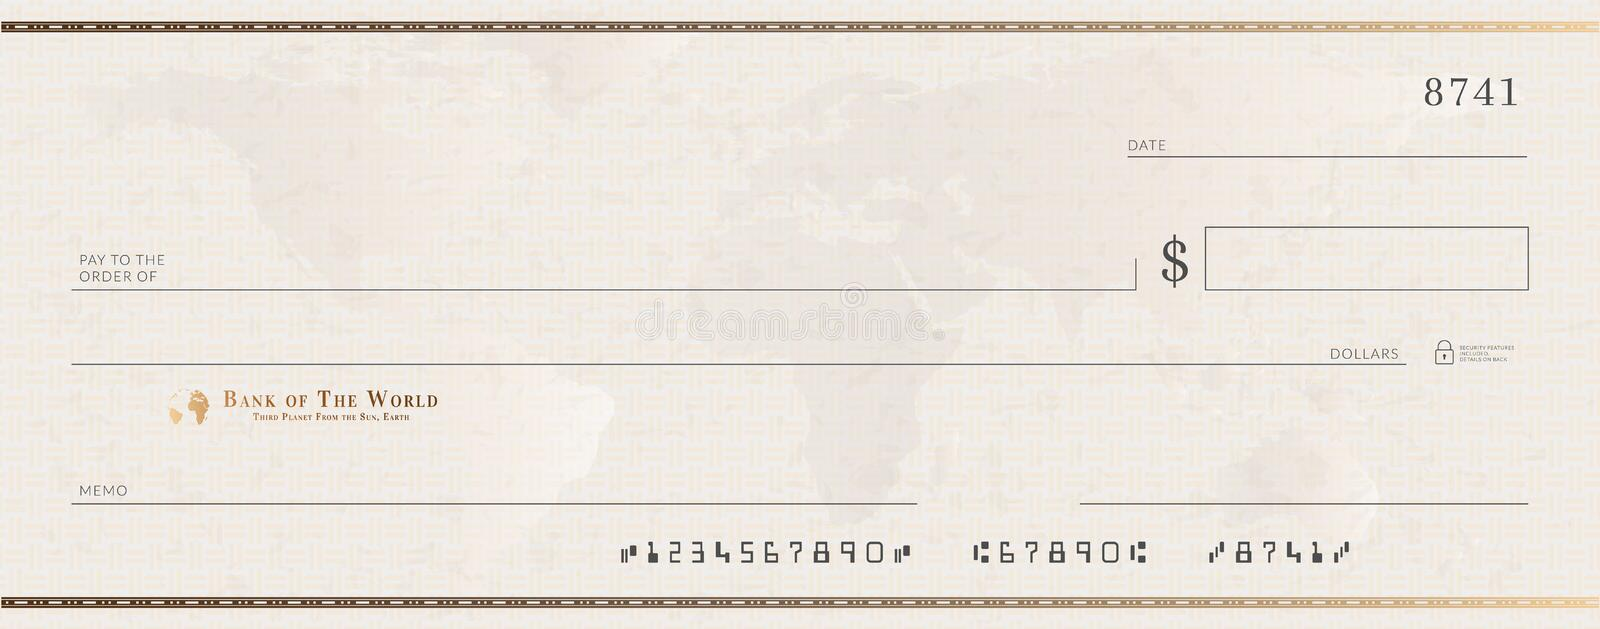 Blank bank golden cheque template. Check from checkbook stock illustration